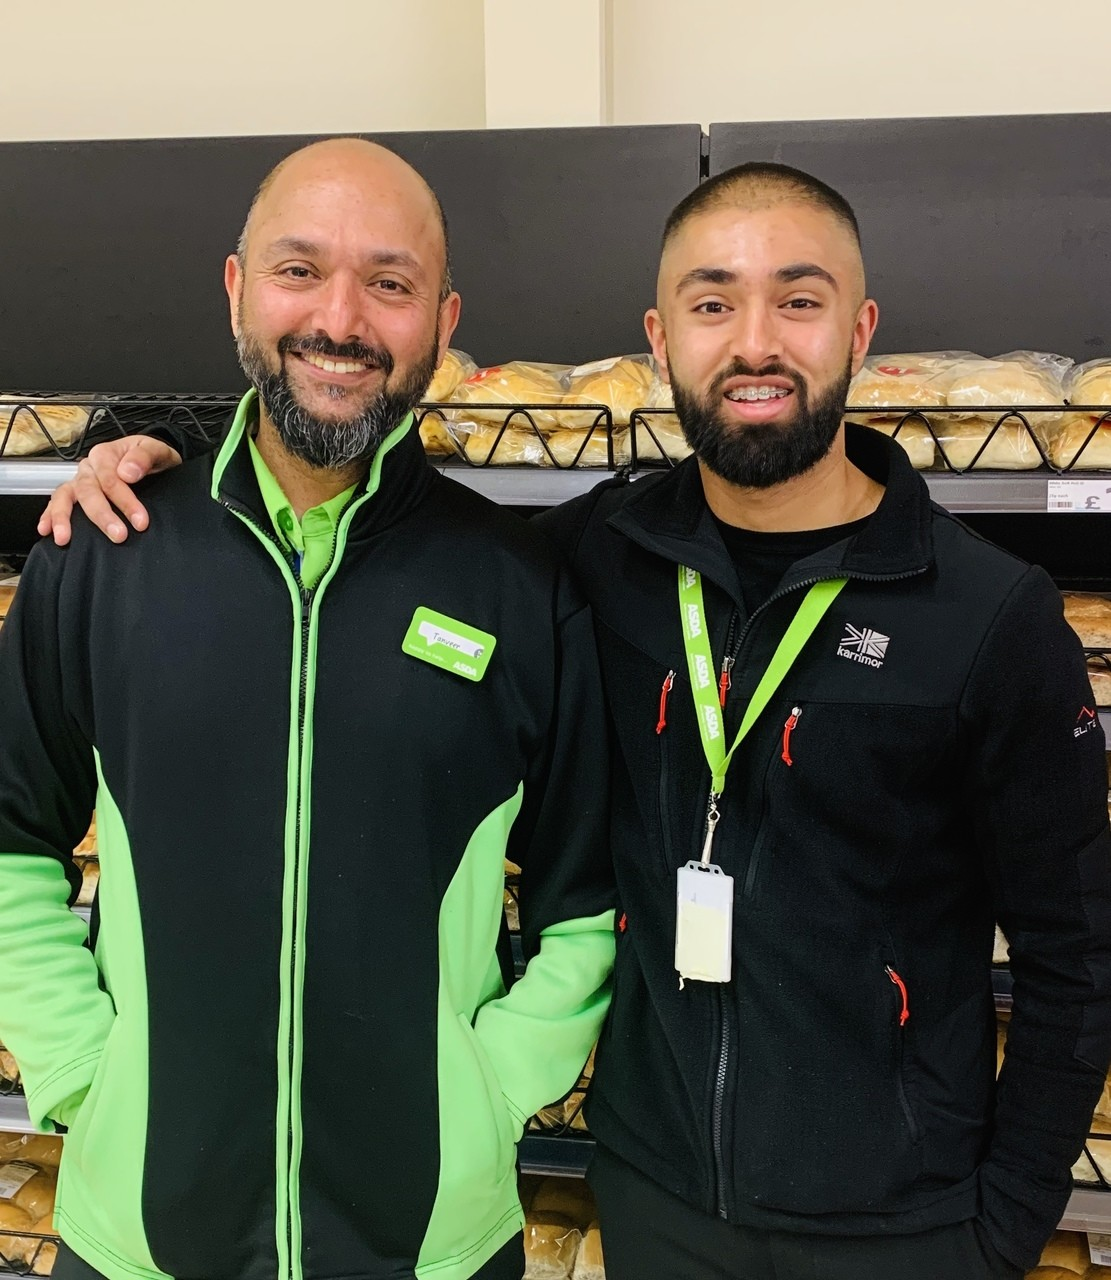 Special Father's Day for Tanveer | Asda Halifax